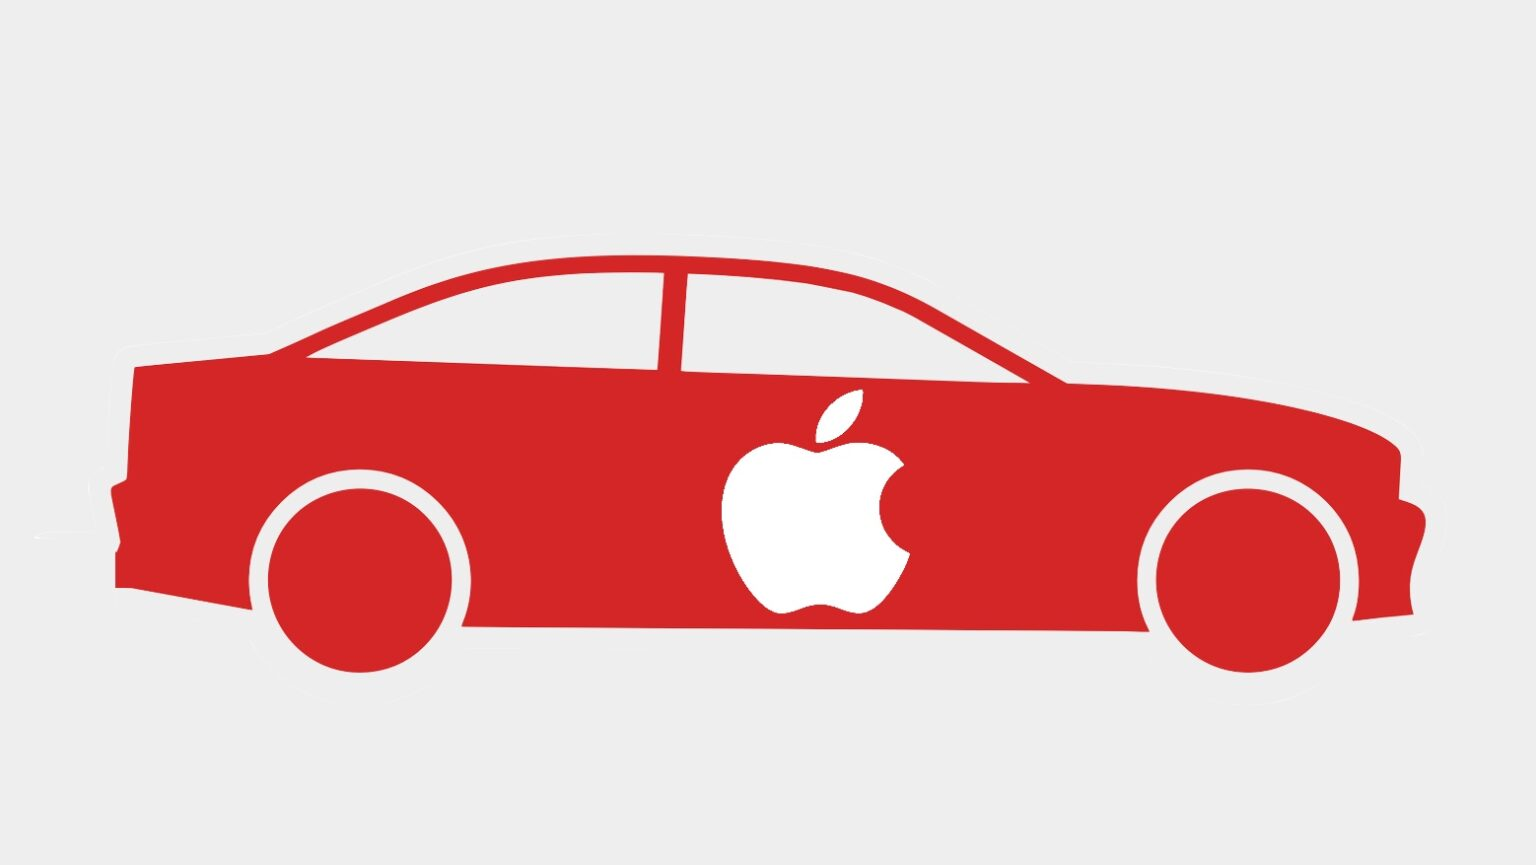 An Apple Car looks increasingly likely.